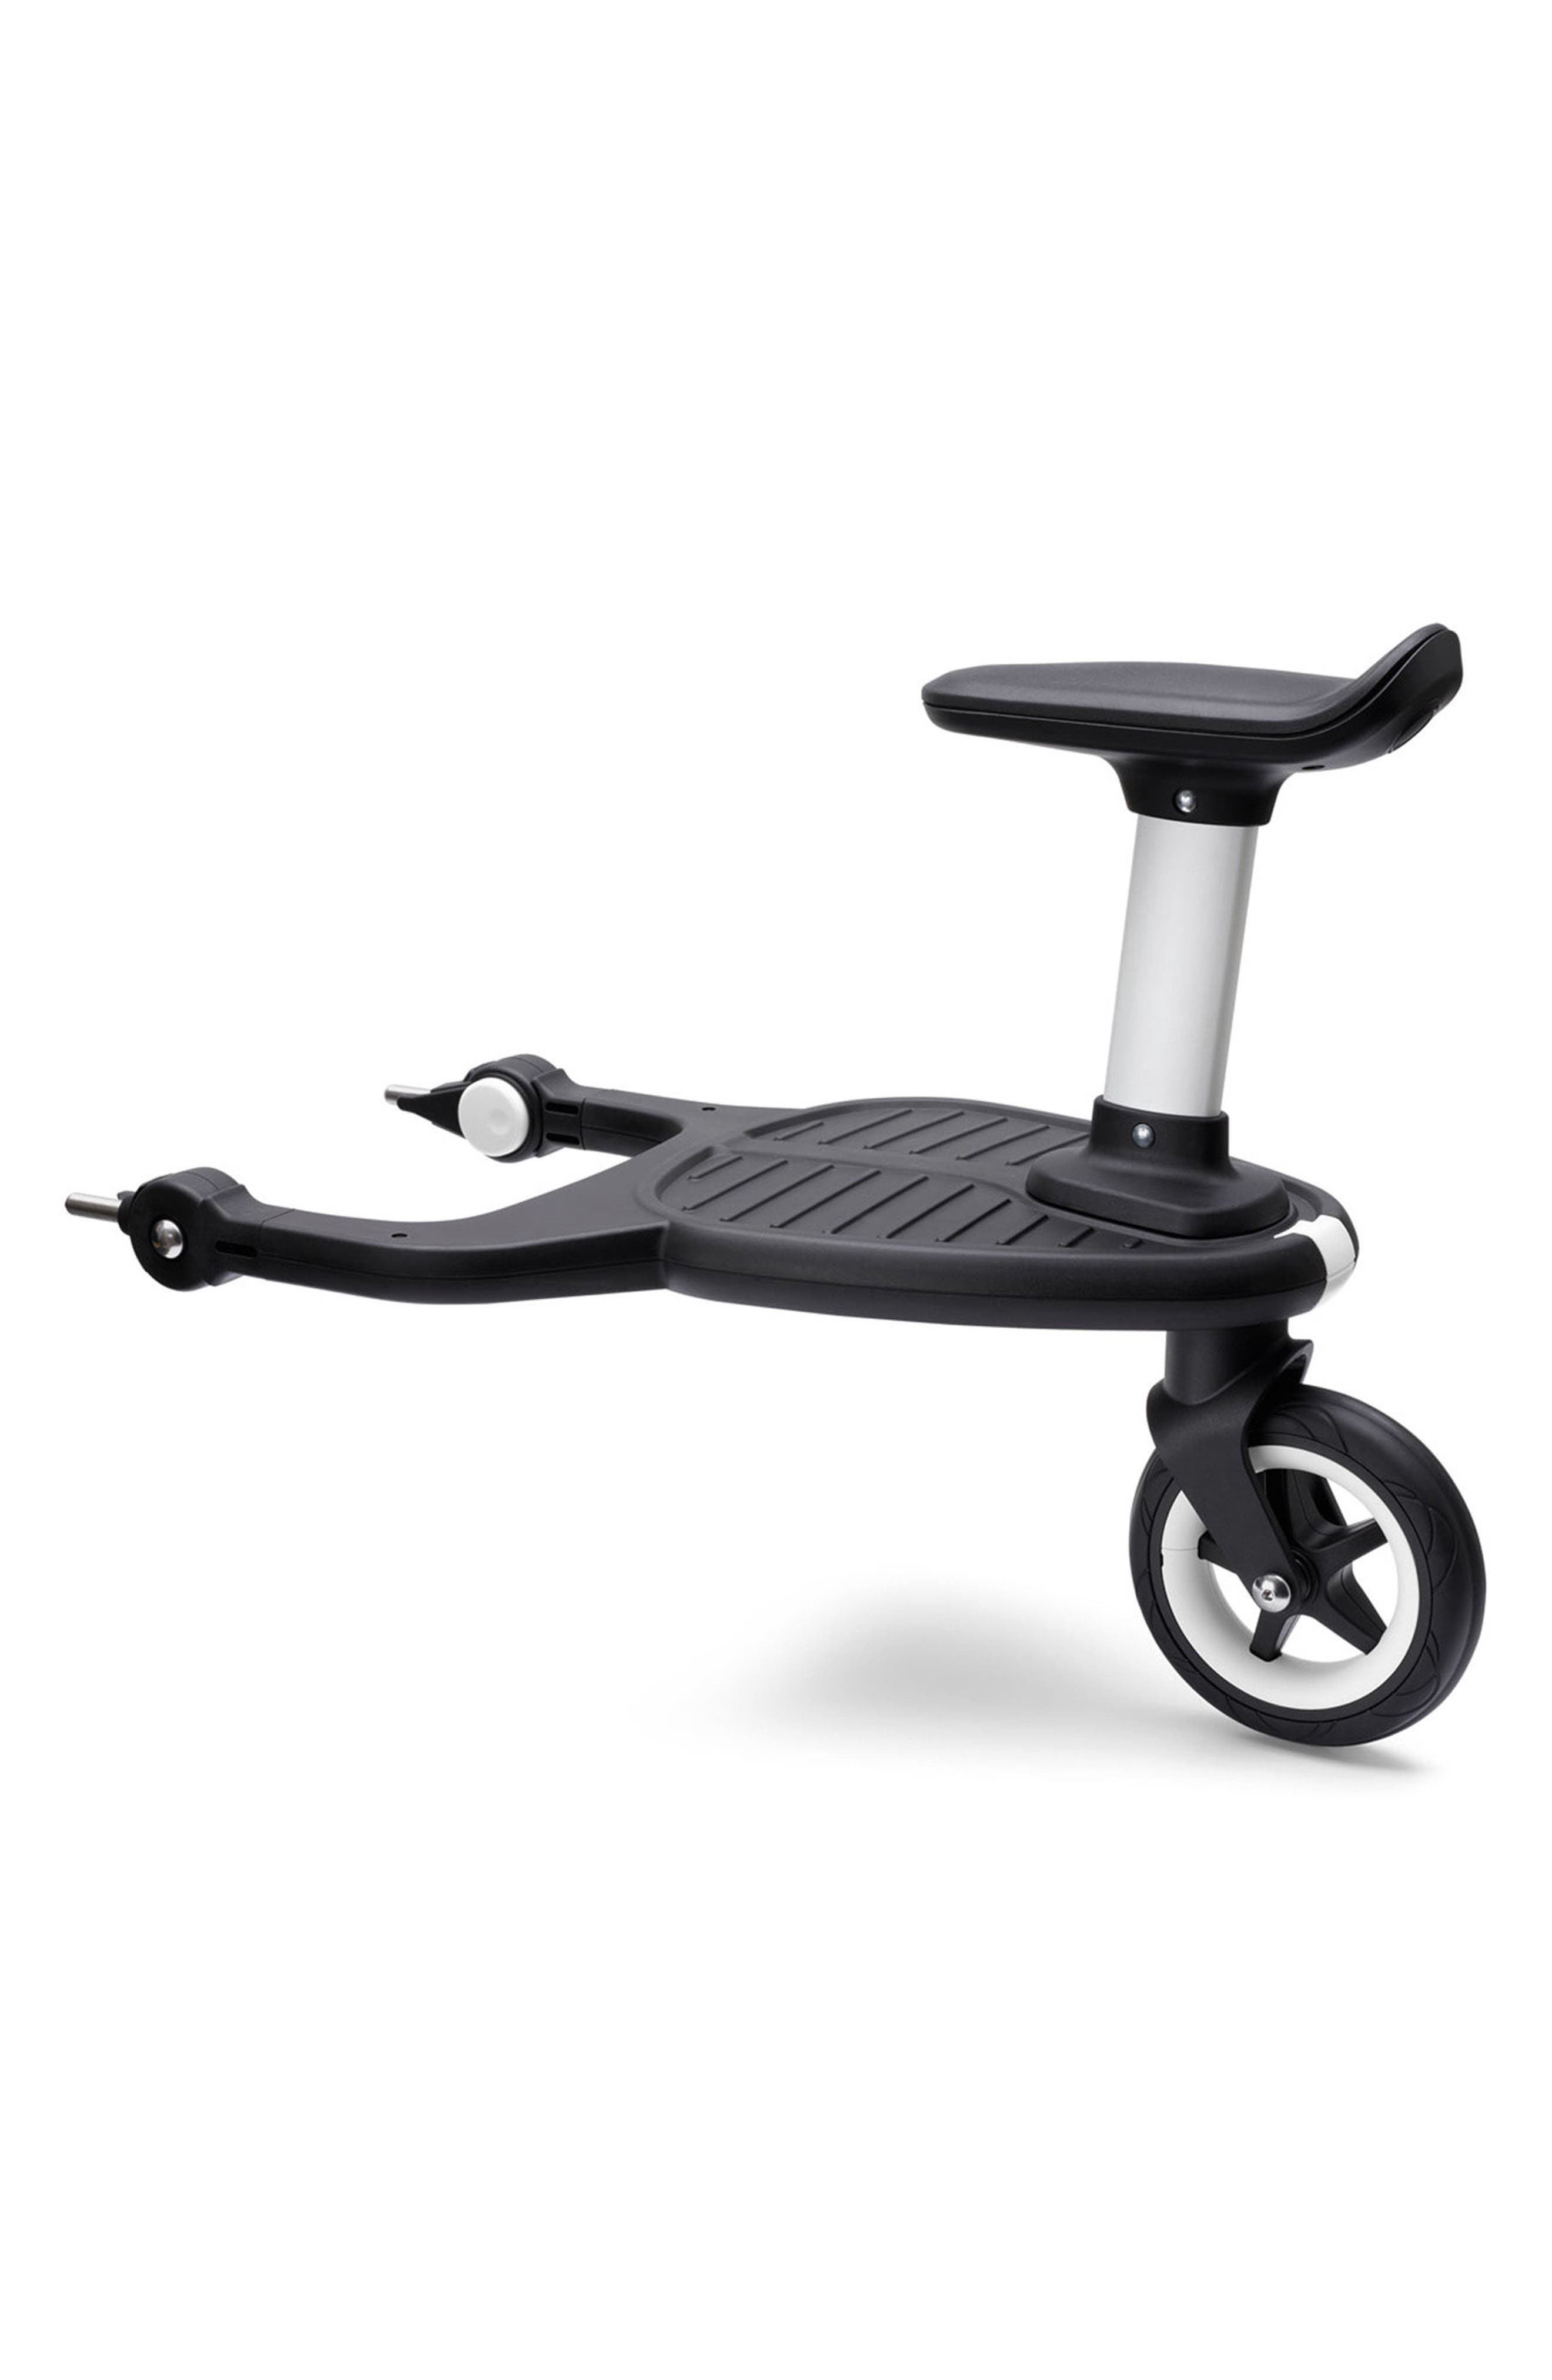 Stroller 2017 Comfort Wheeled Board,                             Main thumbnail 1, color,                             001